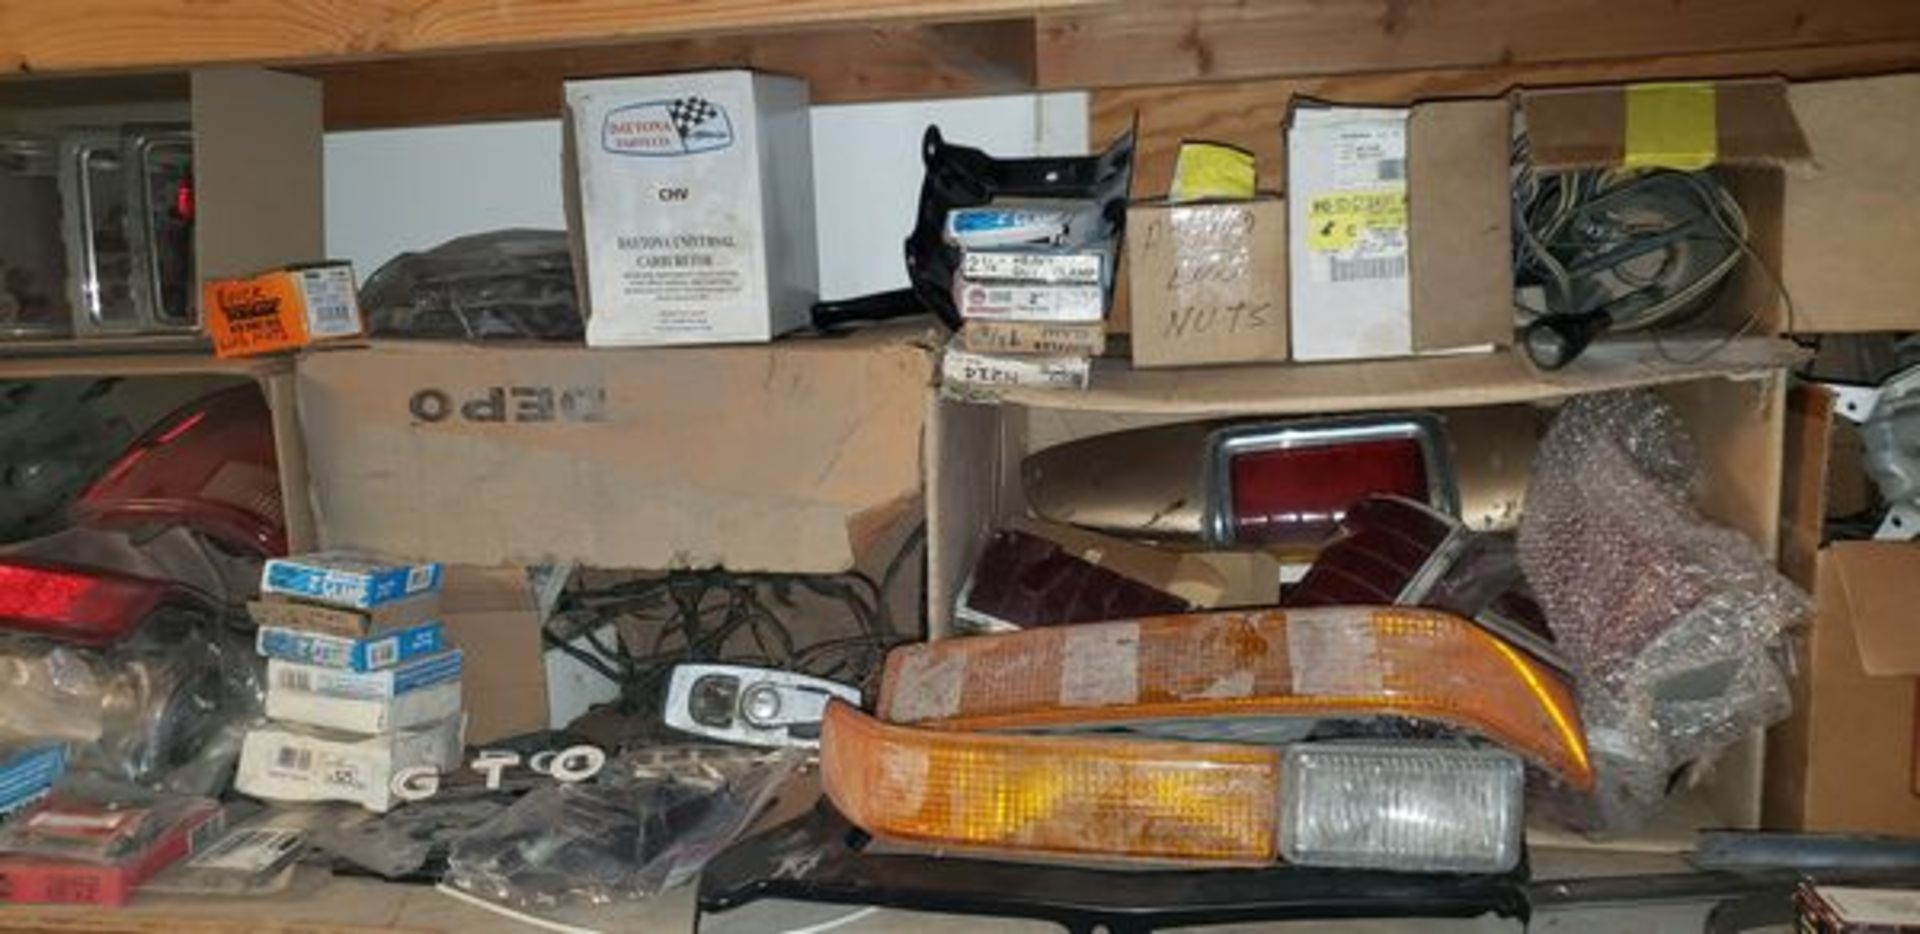 LOT OF ASSORTED CAR PARTS ON 3 SHELVES AND FLOOR - Image 5 of 12